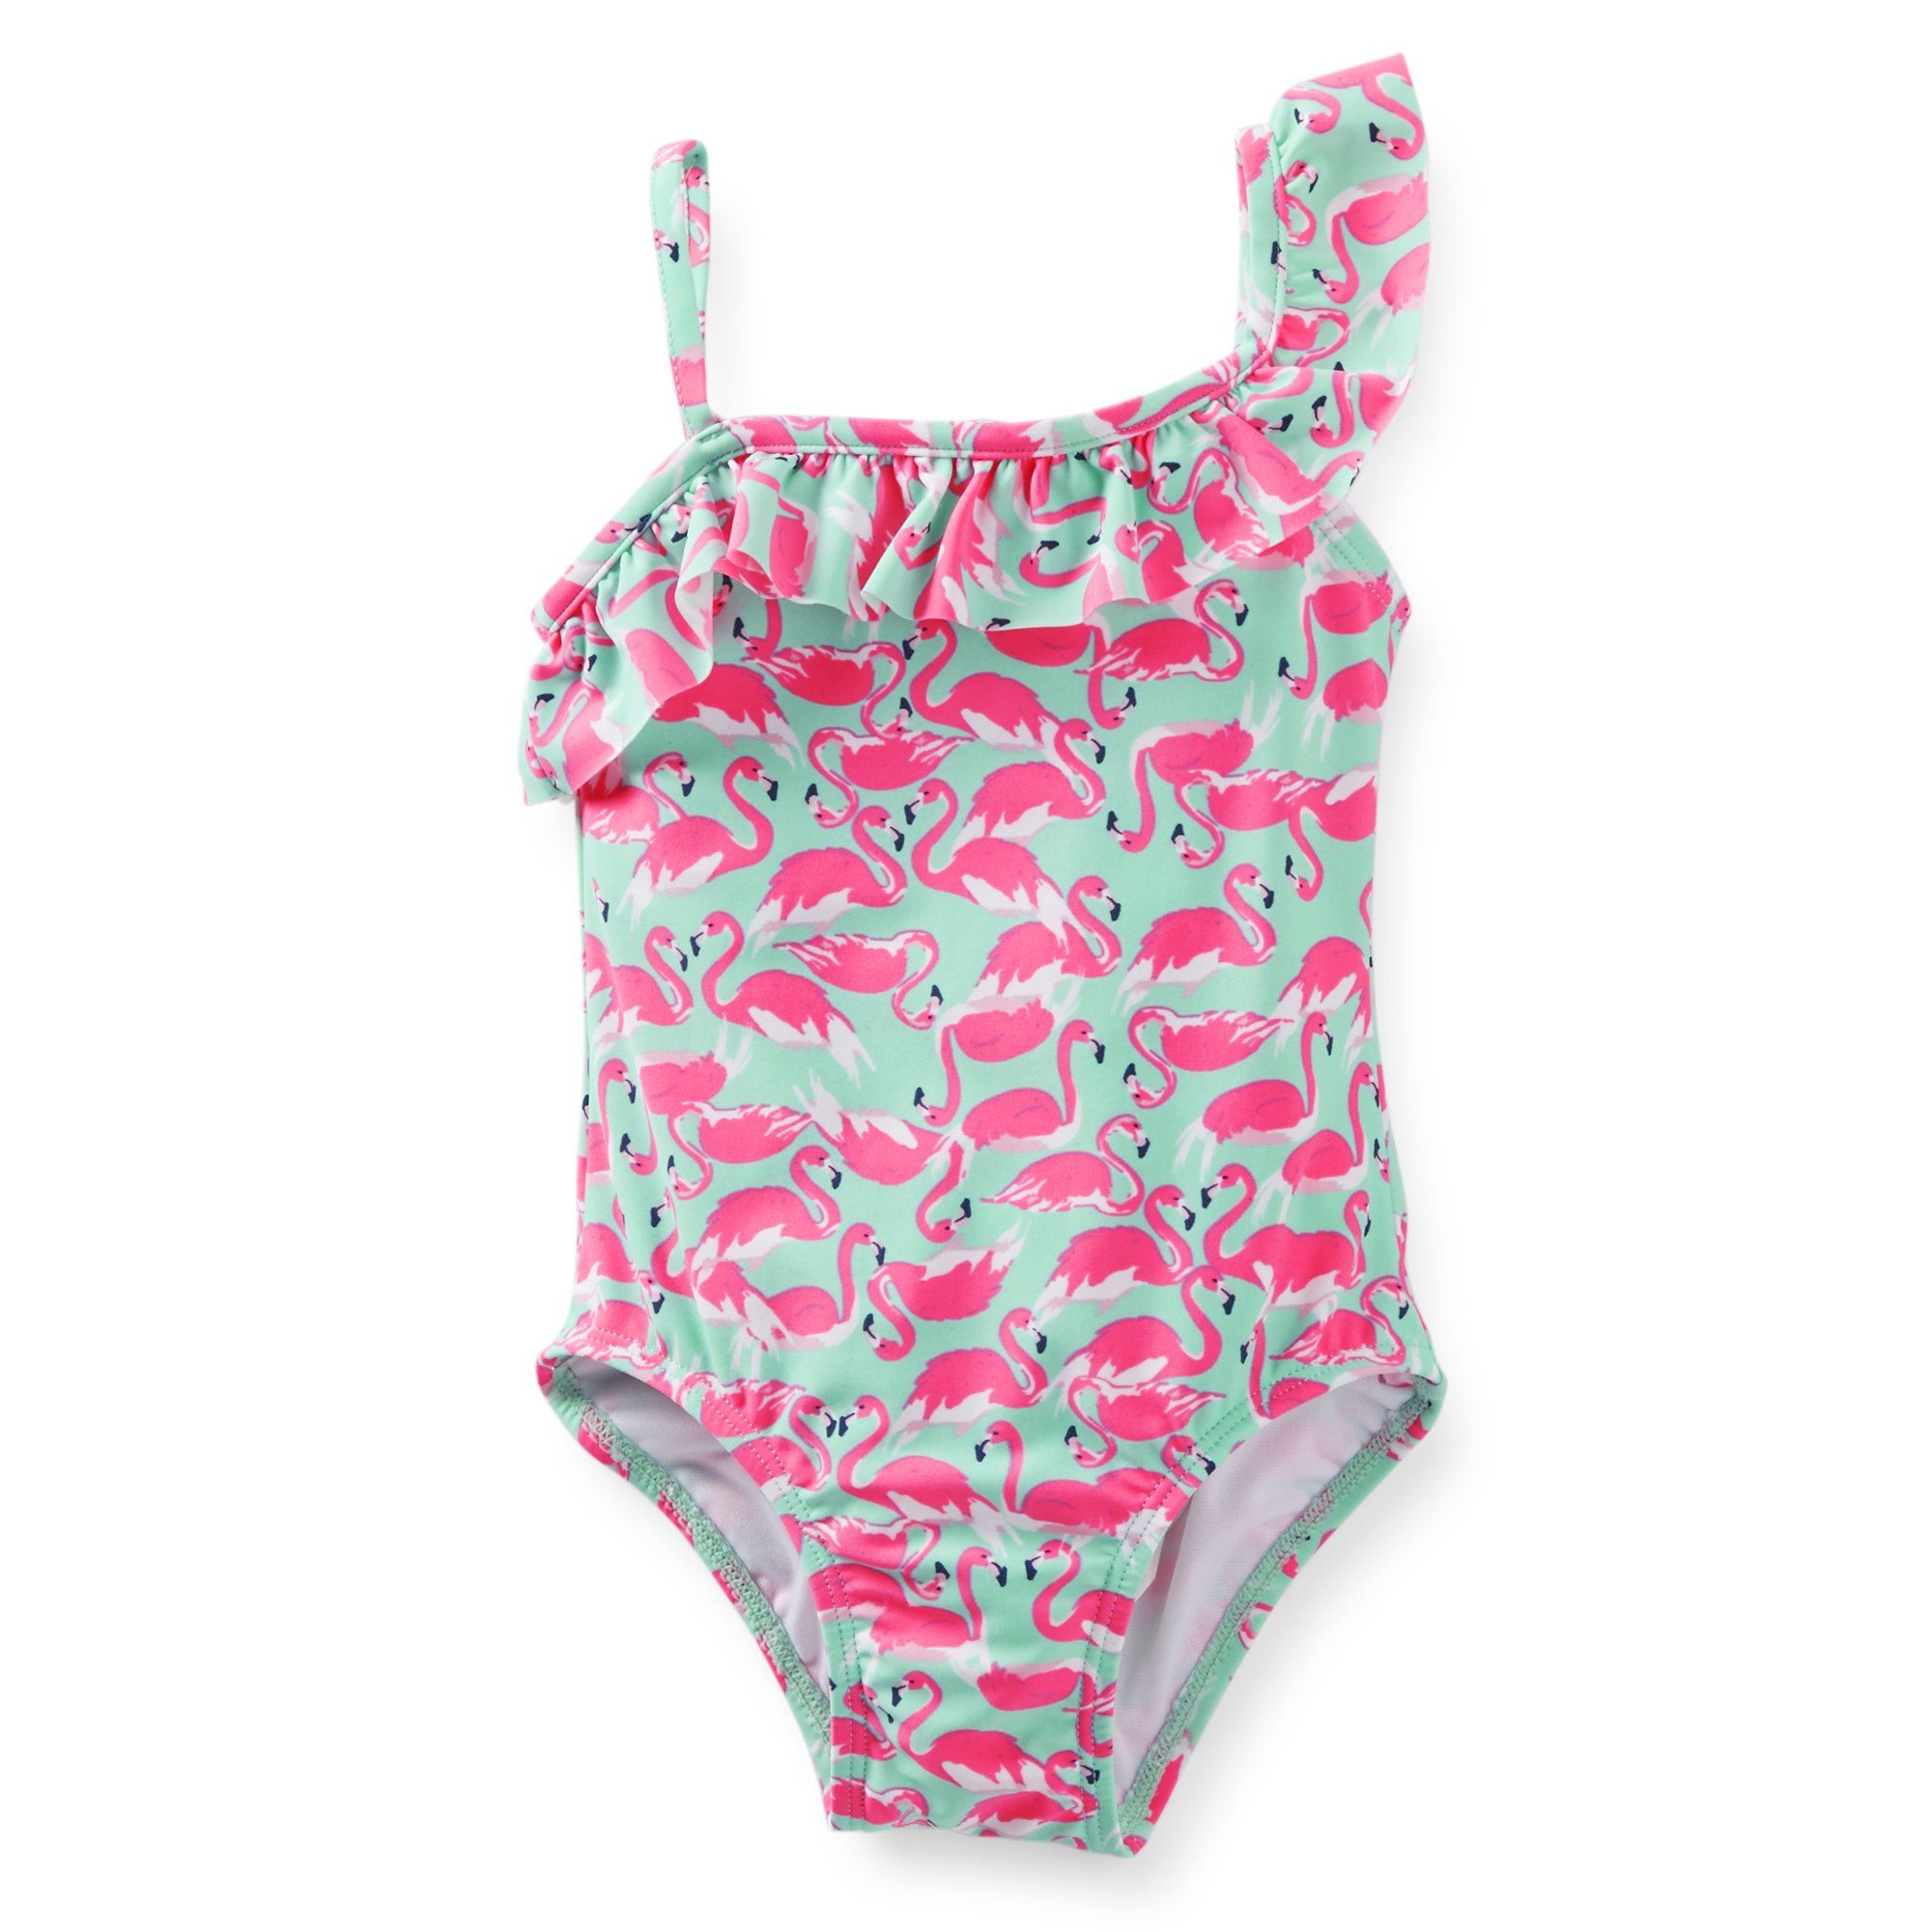 Amazon.com: Carter's Baby-girls One Piece Swimsuit: Infant And ...